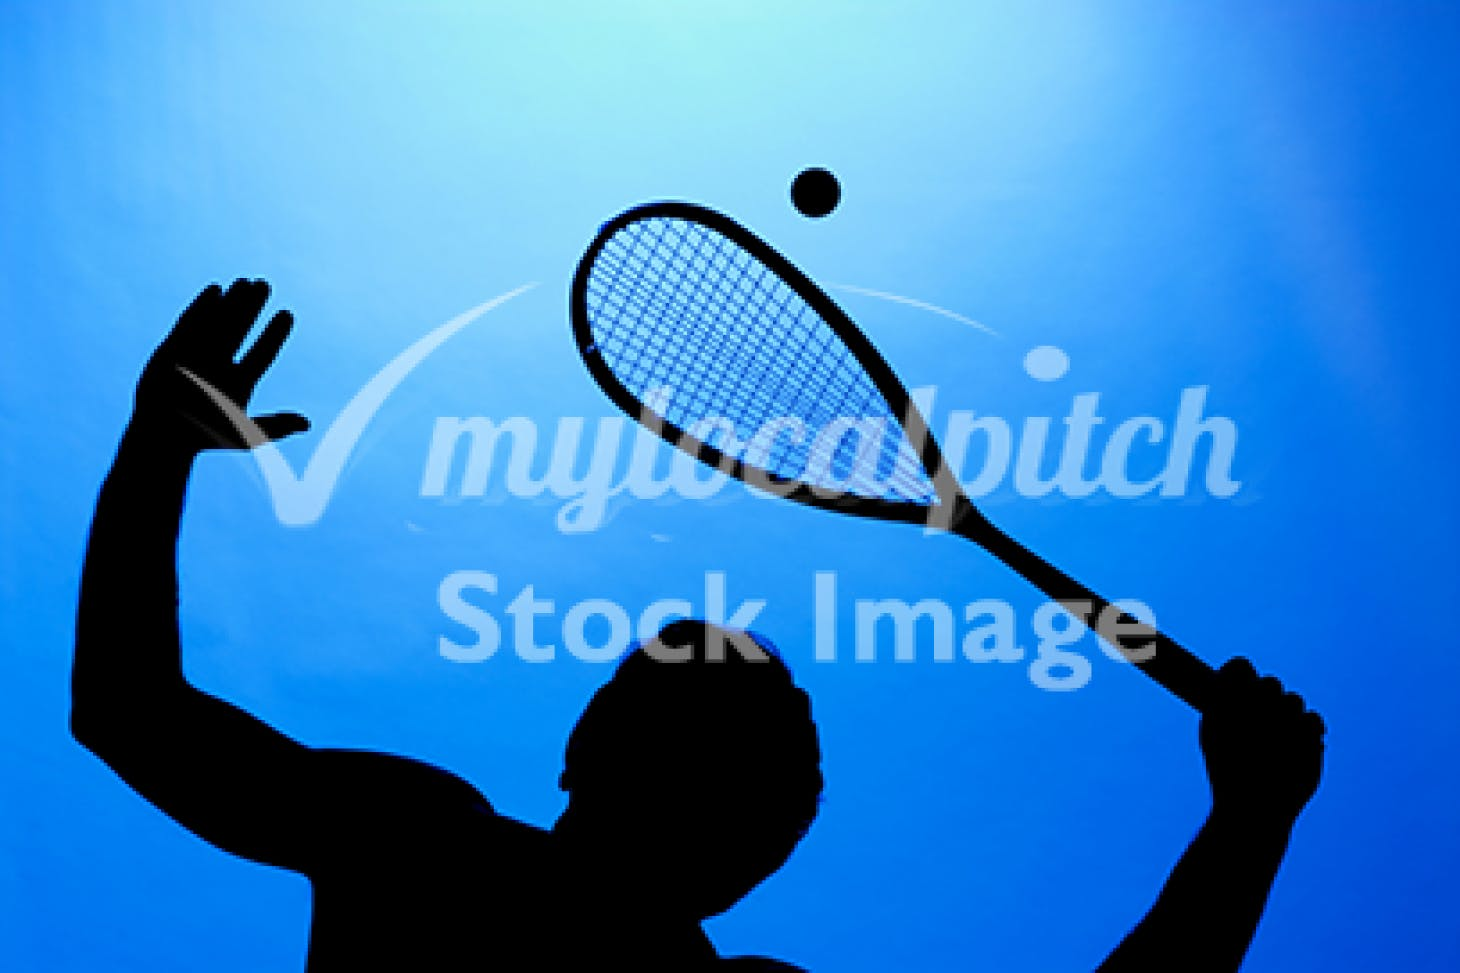 Charters Health Club - YMCA Watford Indoor | Hard squash court